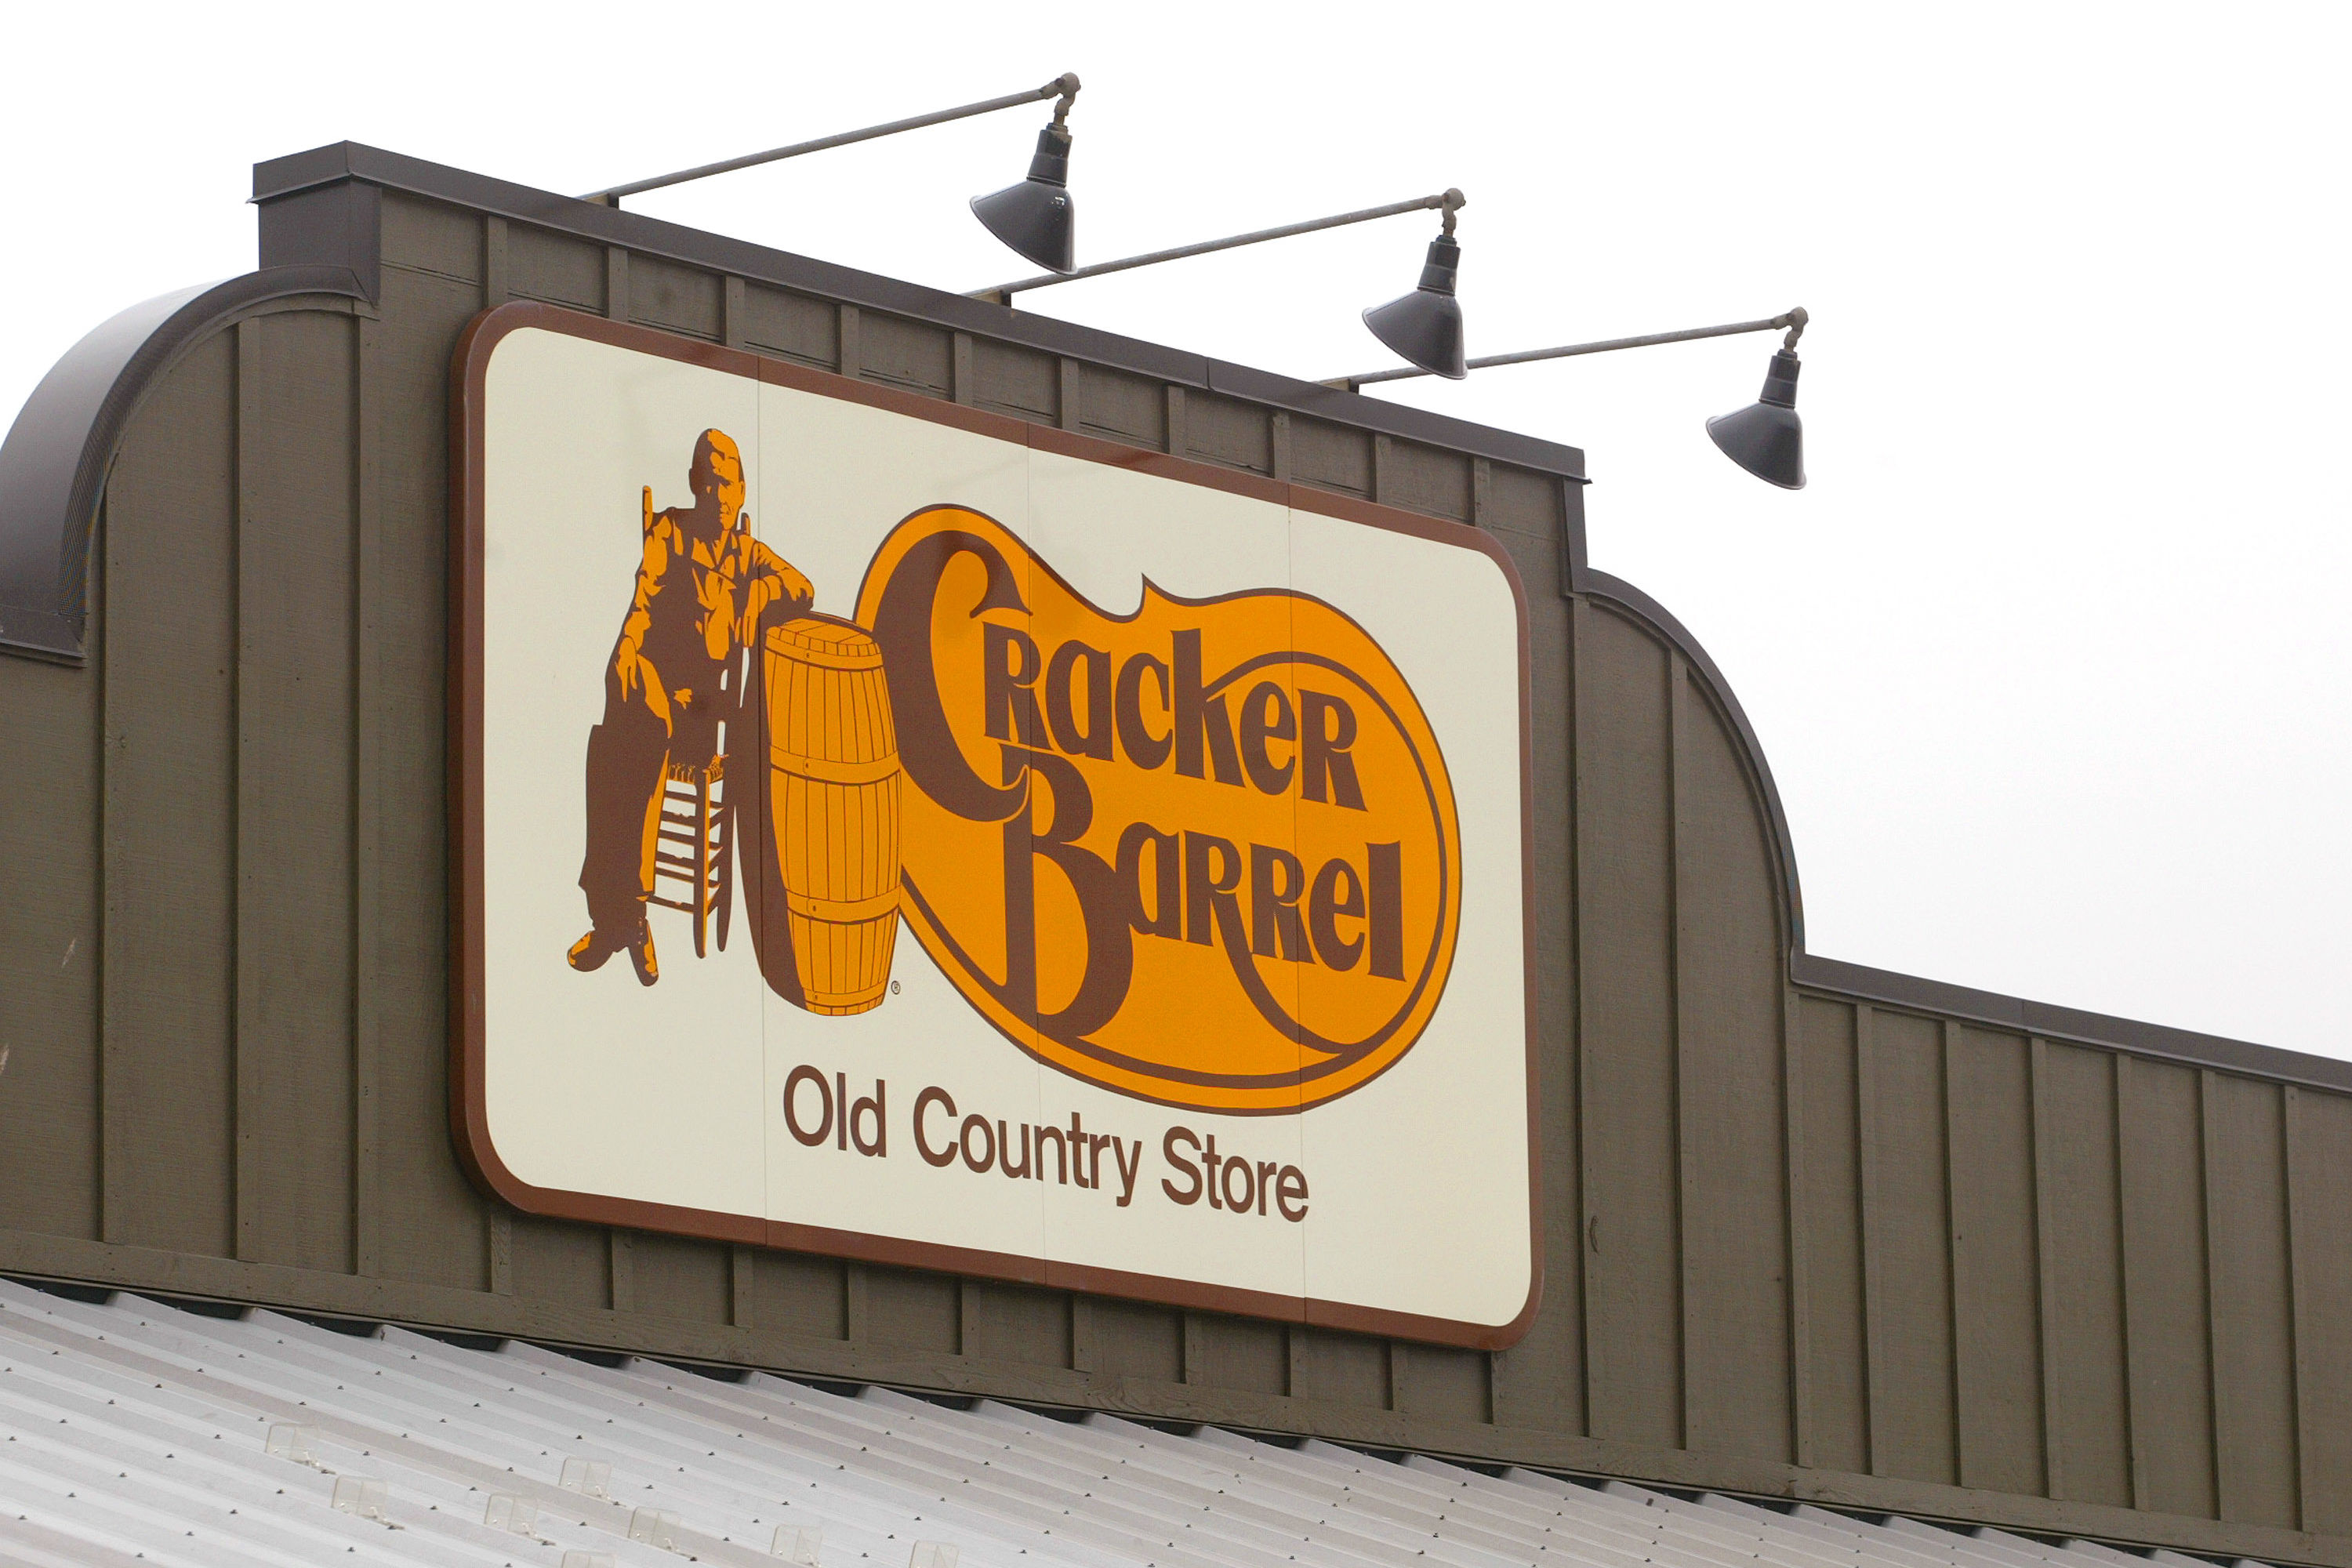 80-Year-Old Couple Has Only One More Location to Go in Quest to Visit Every Cracker Barrel in America